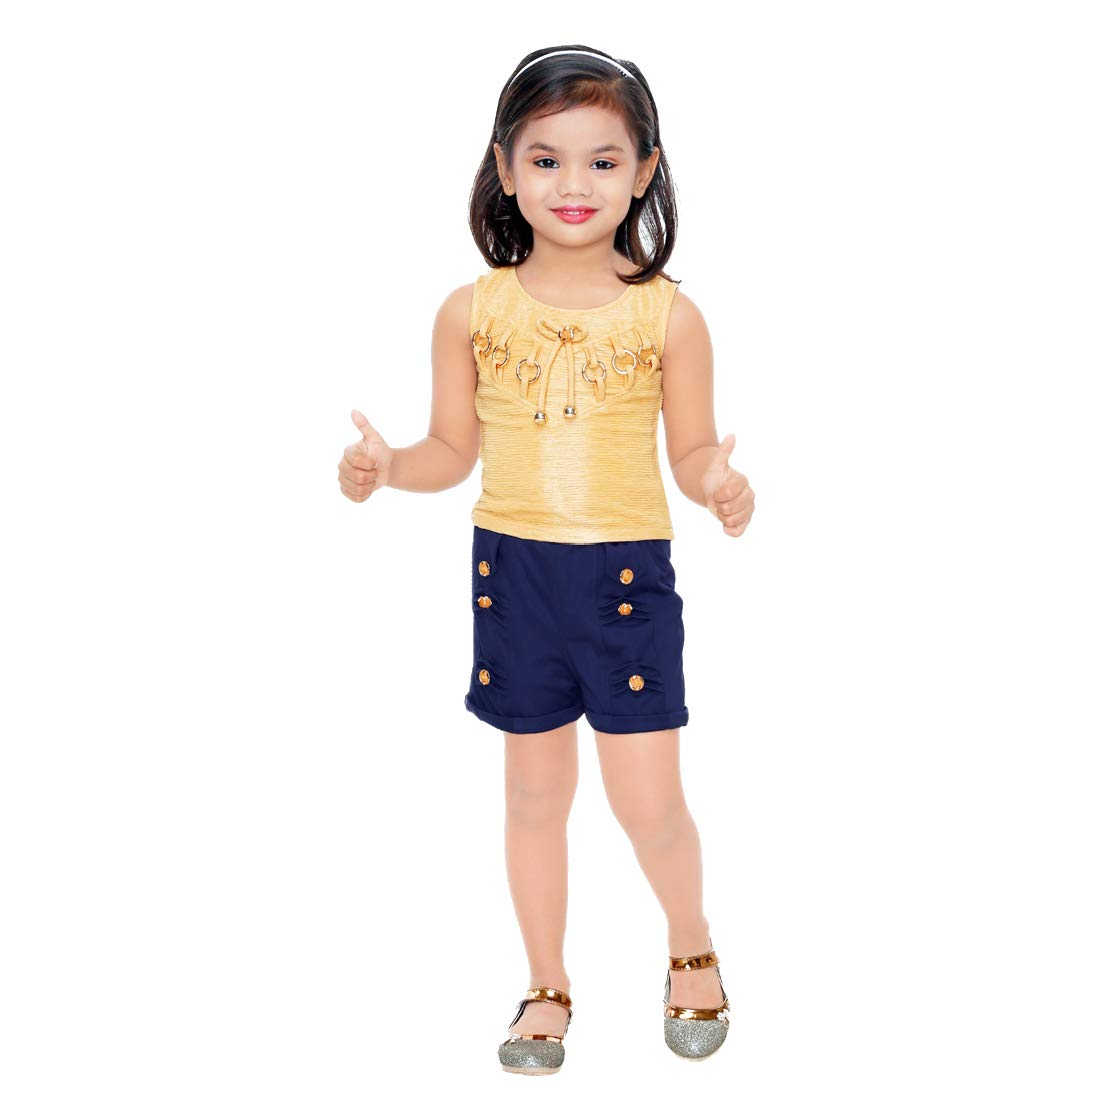 Kids Mandi Floral Kid Girls Dresses, Round Neck Sleeveless Shorts top for Summer Wear, Casual Wear, Party Wear